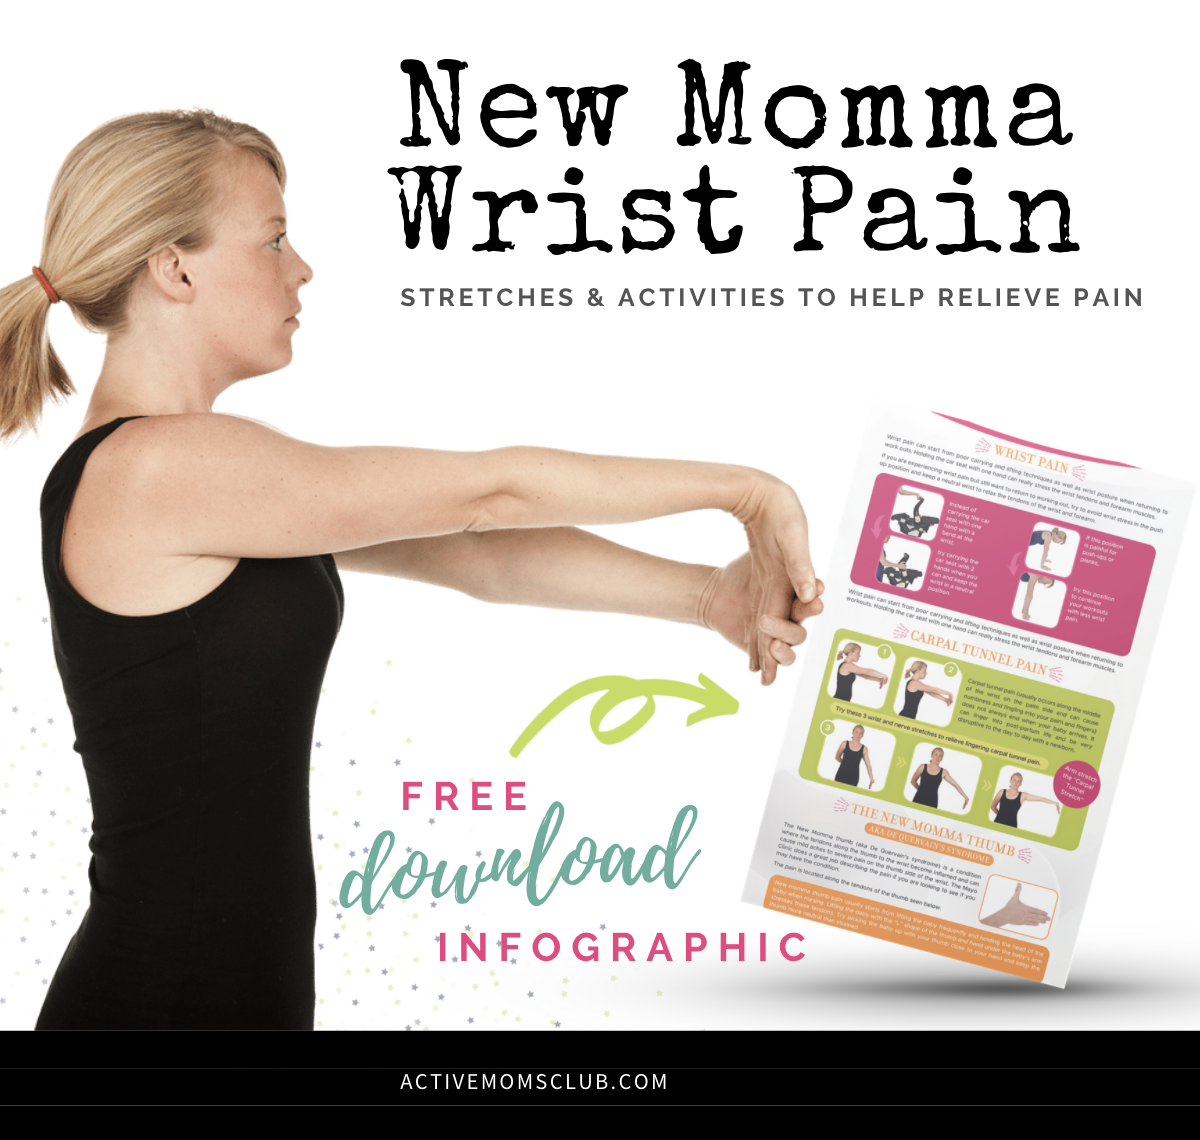 New momma wrist pain stretches to relieve pain infographic